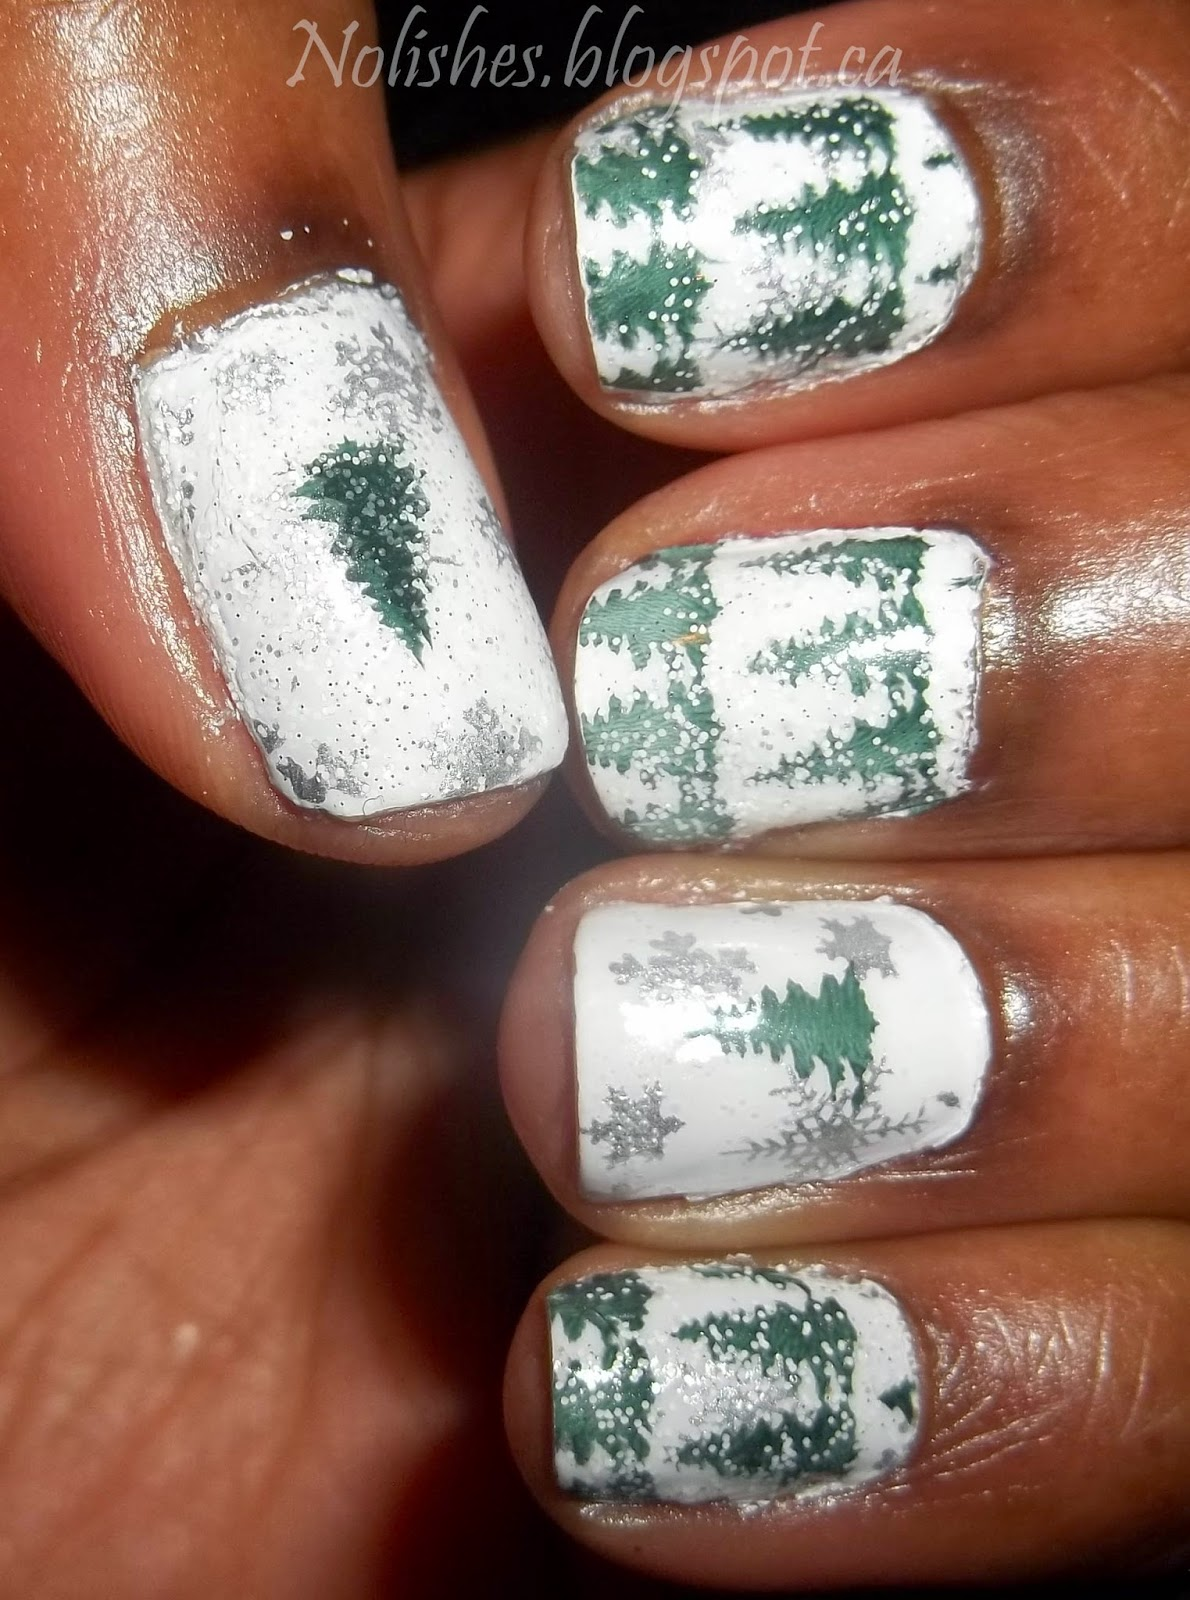 nail stamping manicure featuring forest green pine trees over white background with silver snowflakes - left hand